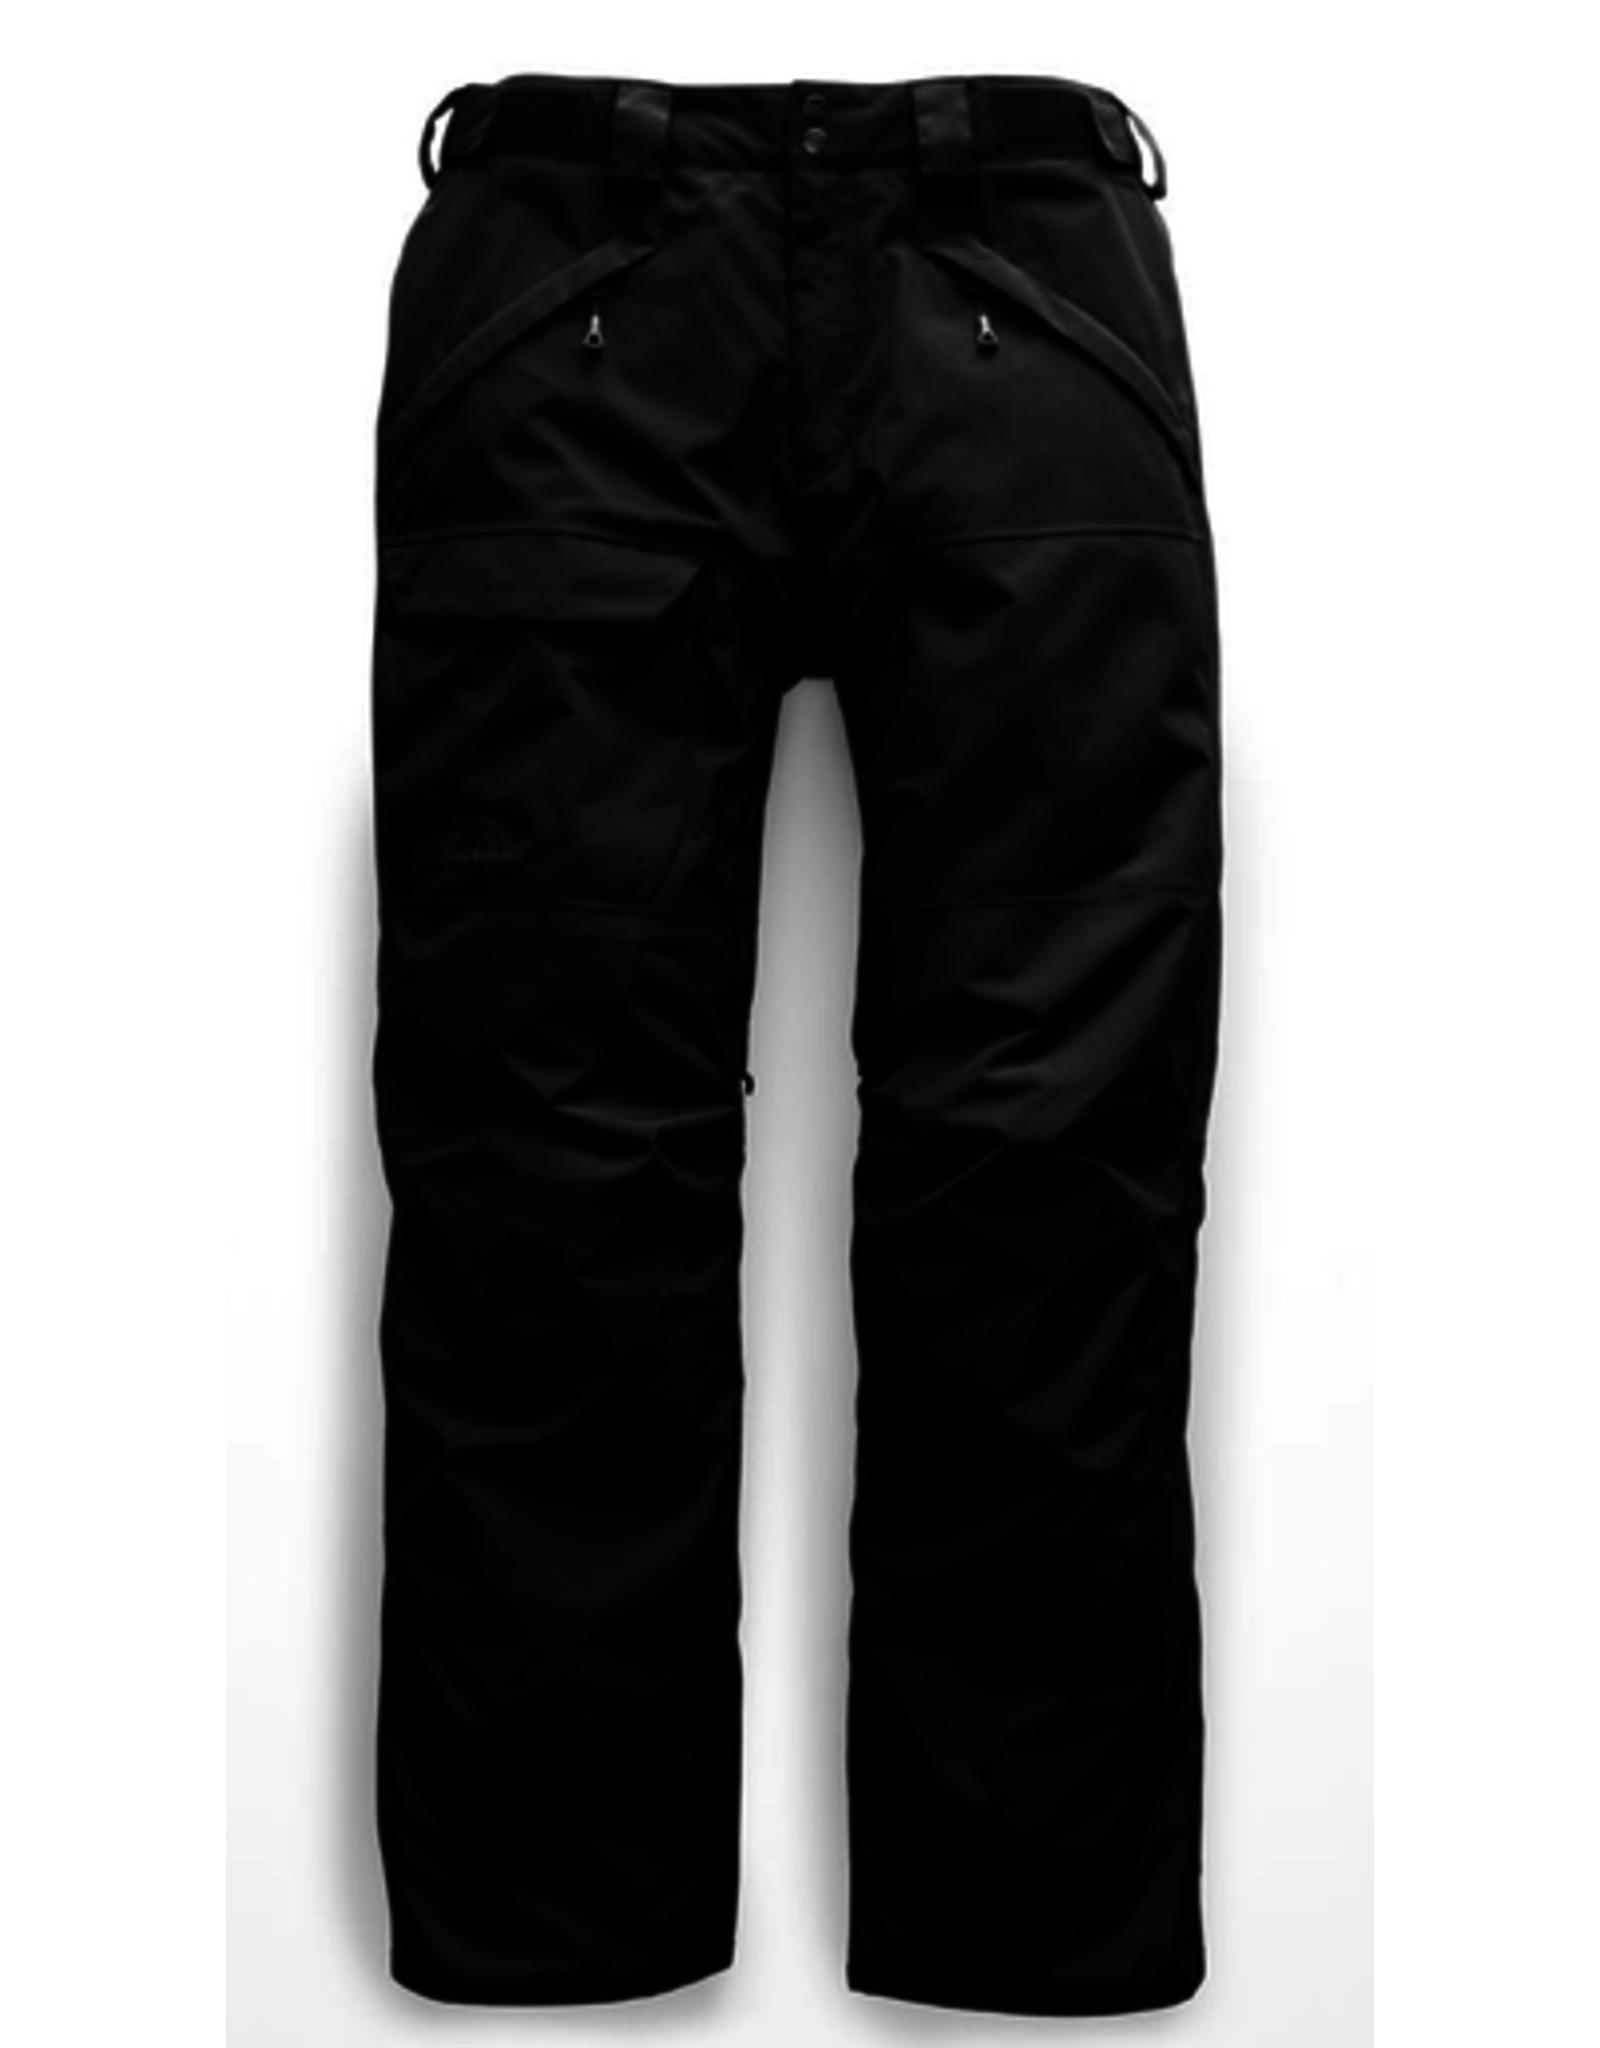 North Face North Face Men's Freedom Insulated Pants